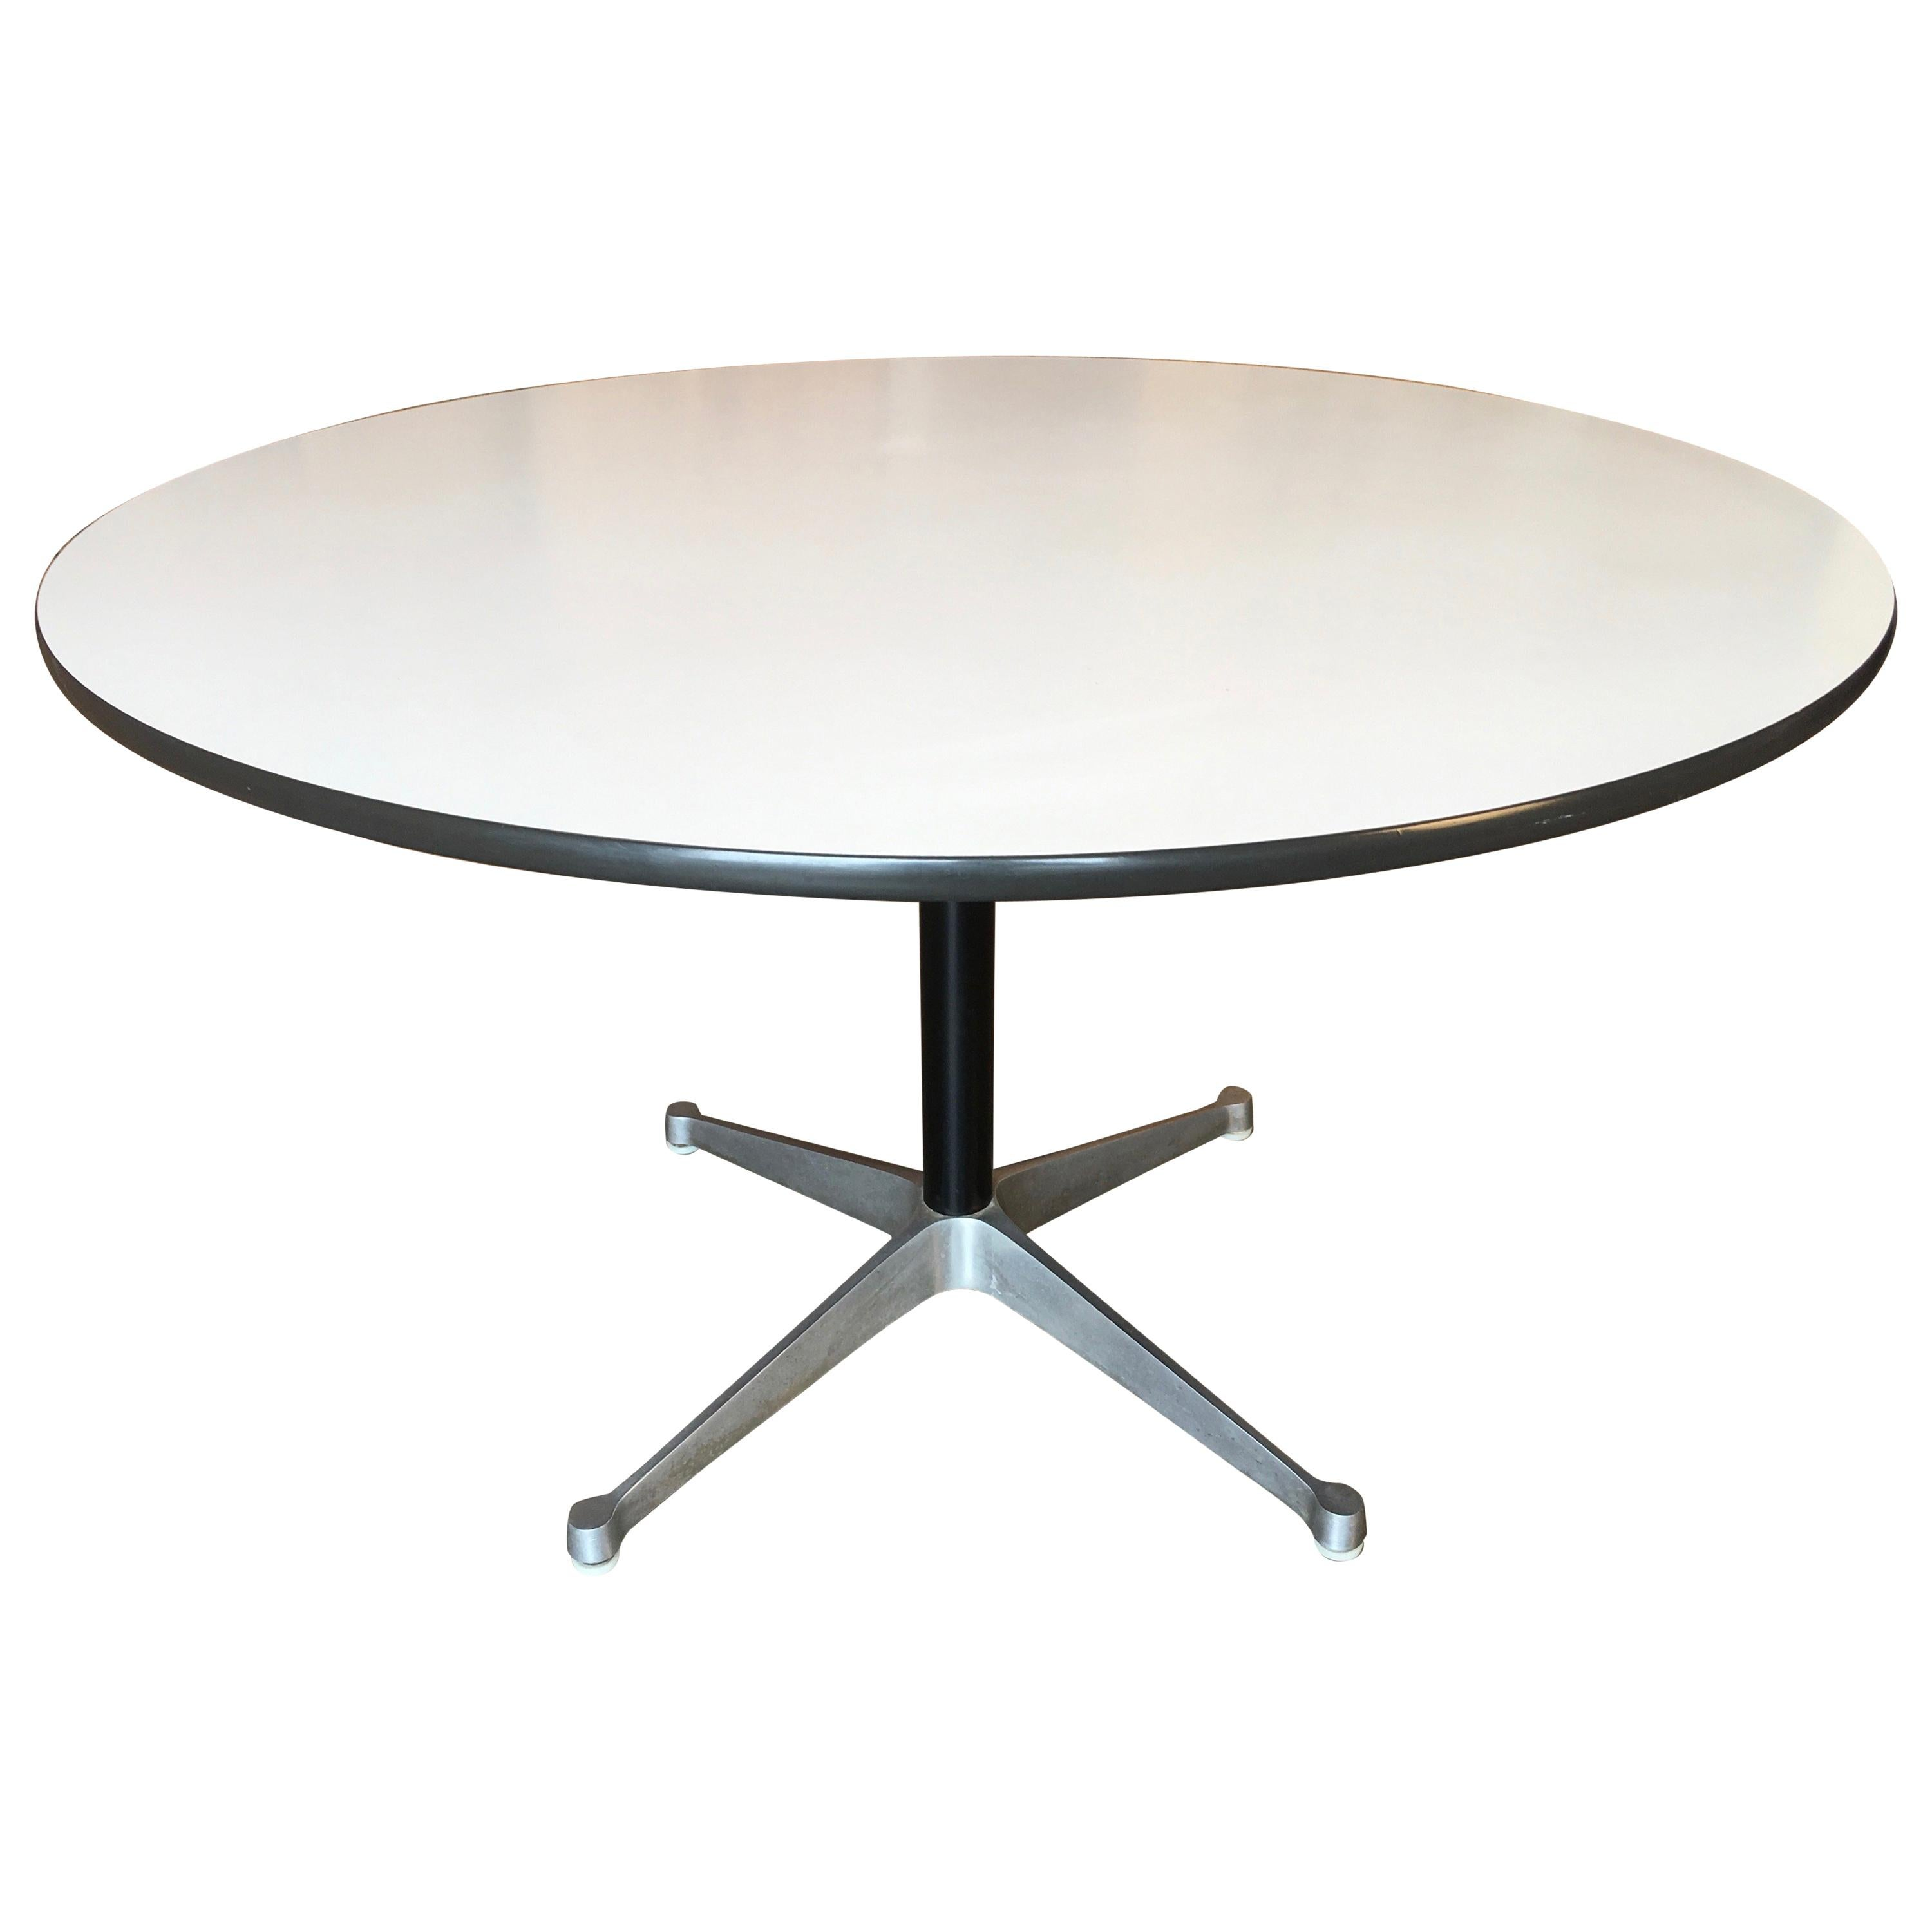 Beau Eames Round Dining Table For Herman Miller, 1960s